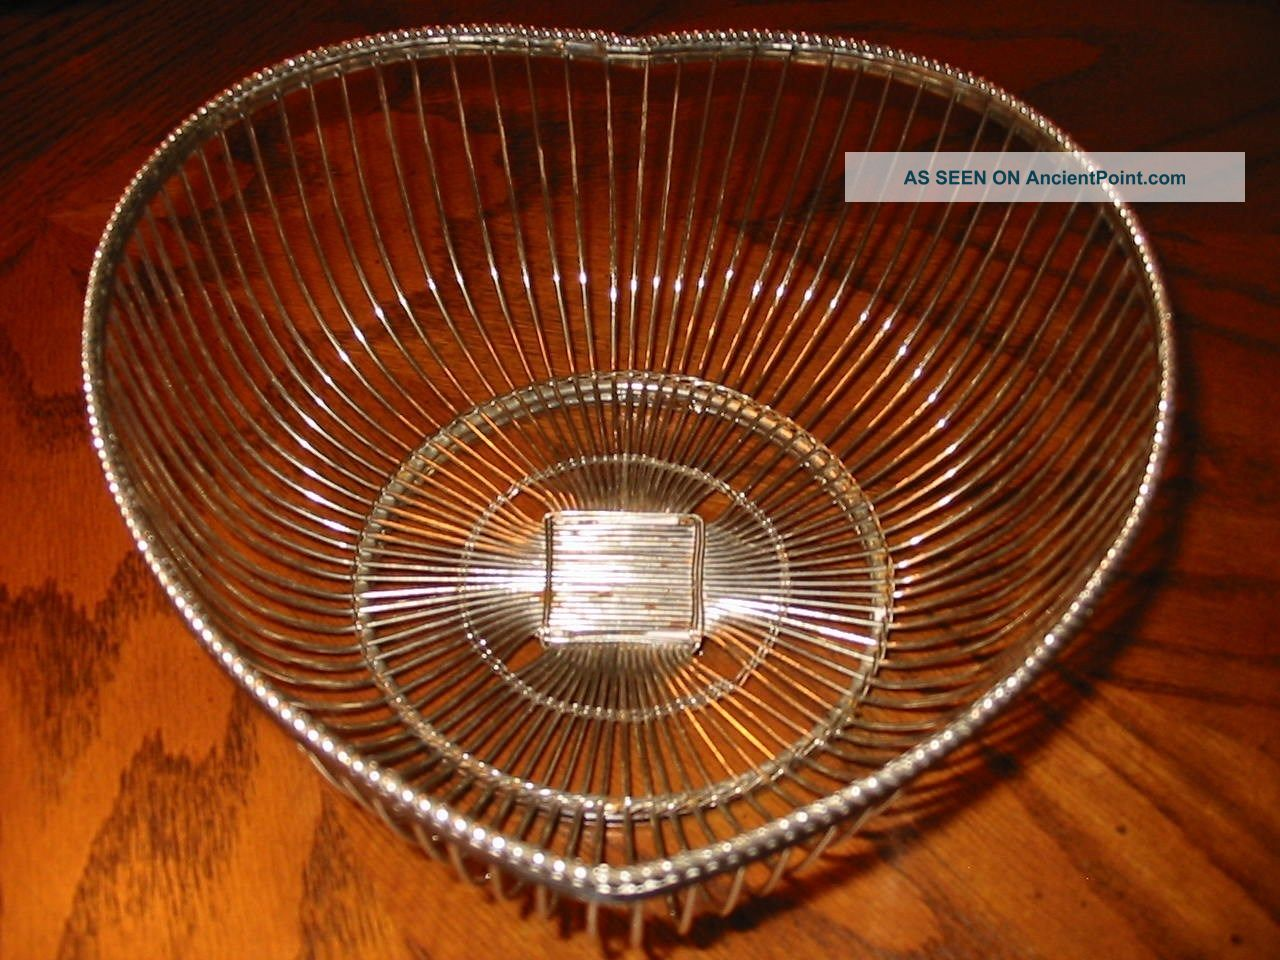 Vintage Heart Shaped Silver Wire Tabletop Basket By International Silver Co. Baskets photo